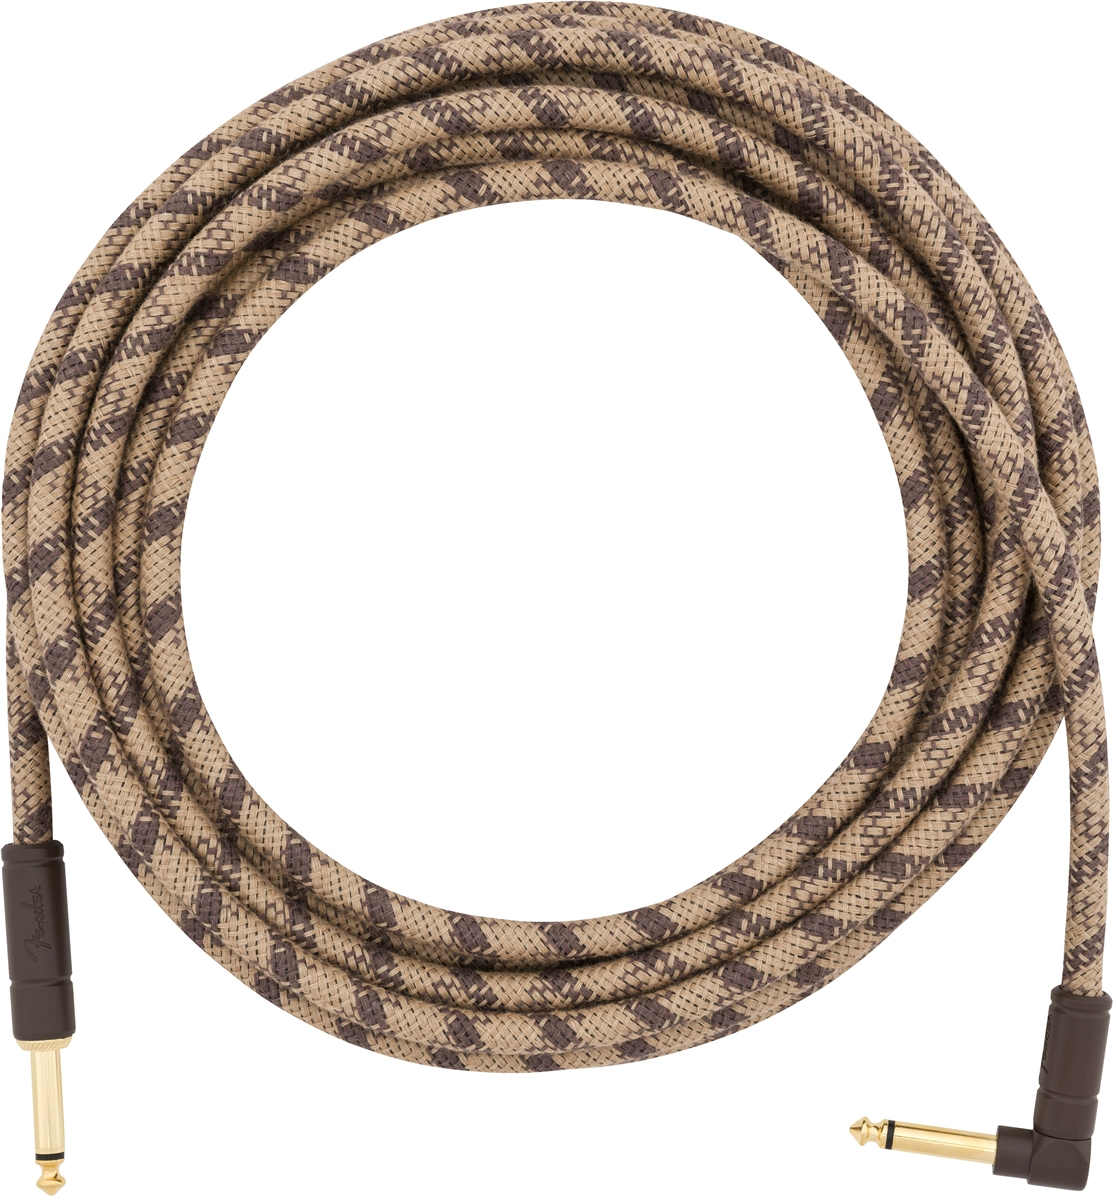 Festival Hemp Instrument Cables Brown Stripe 18.6FT追加画像